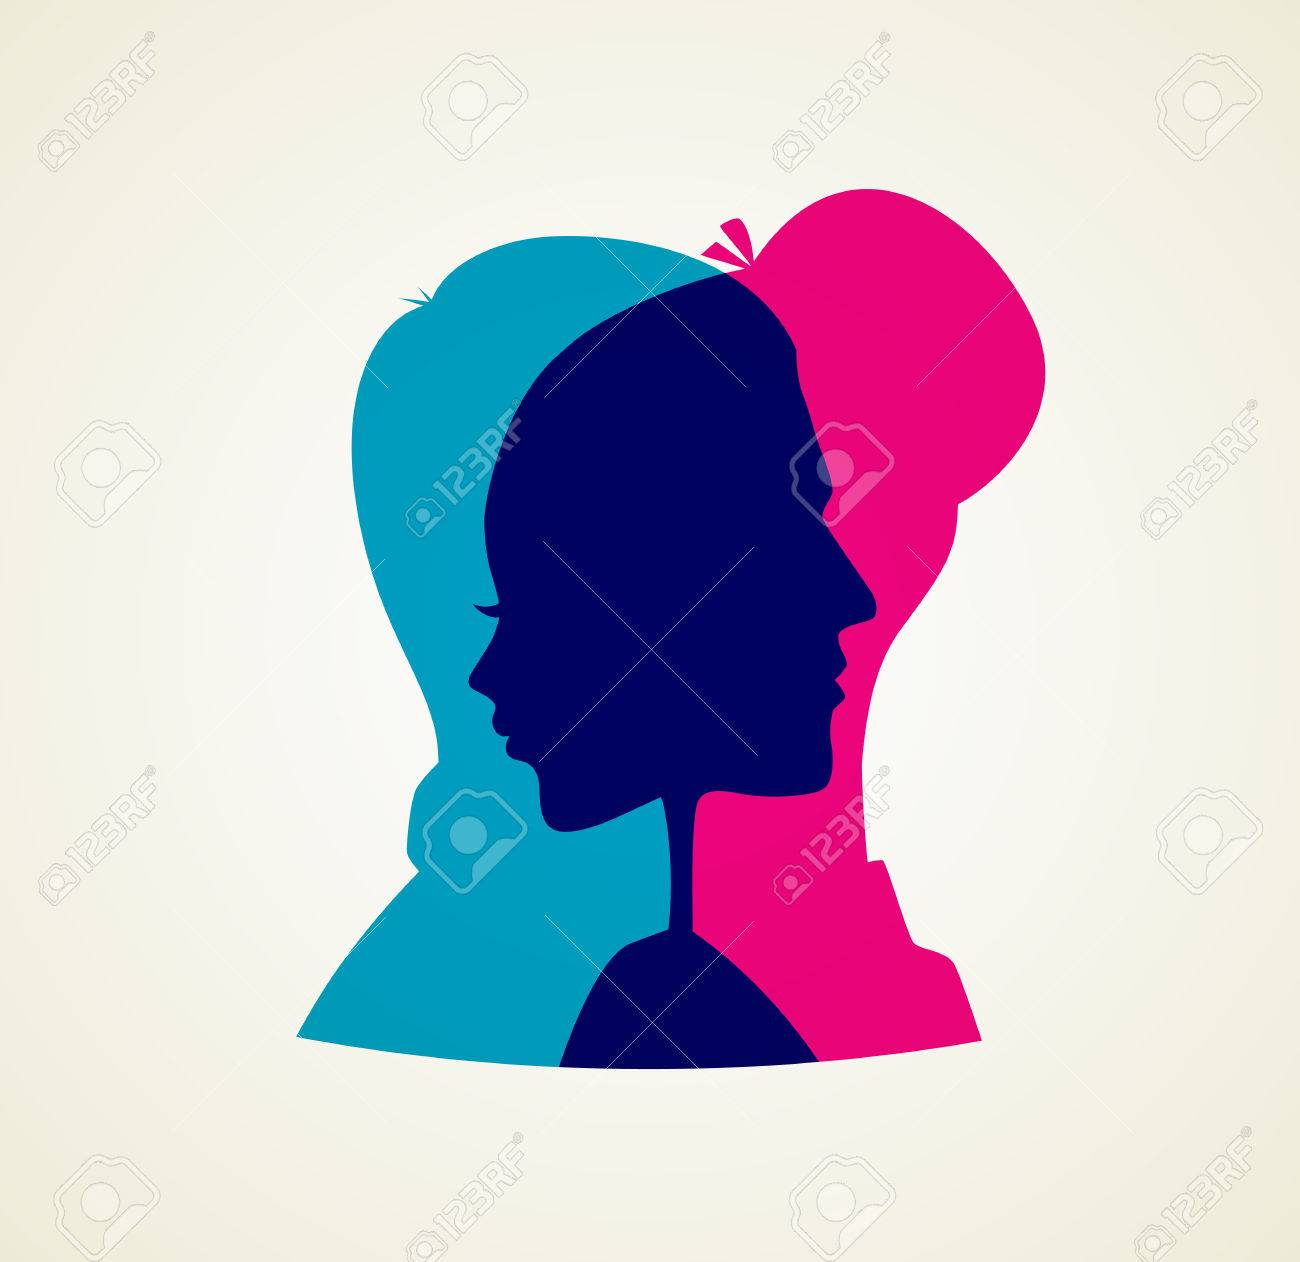 Vector illustration of Couple's silhouette - 32622565